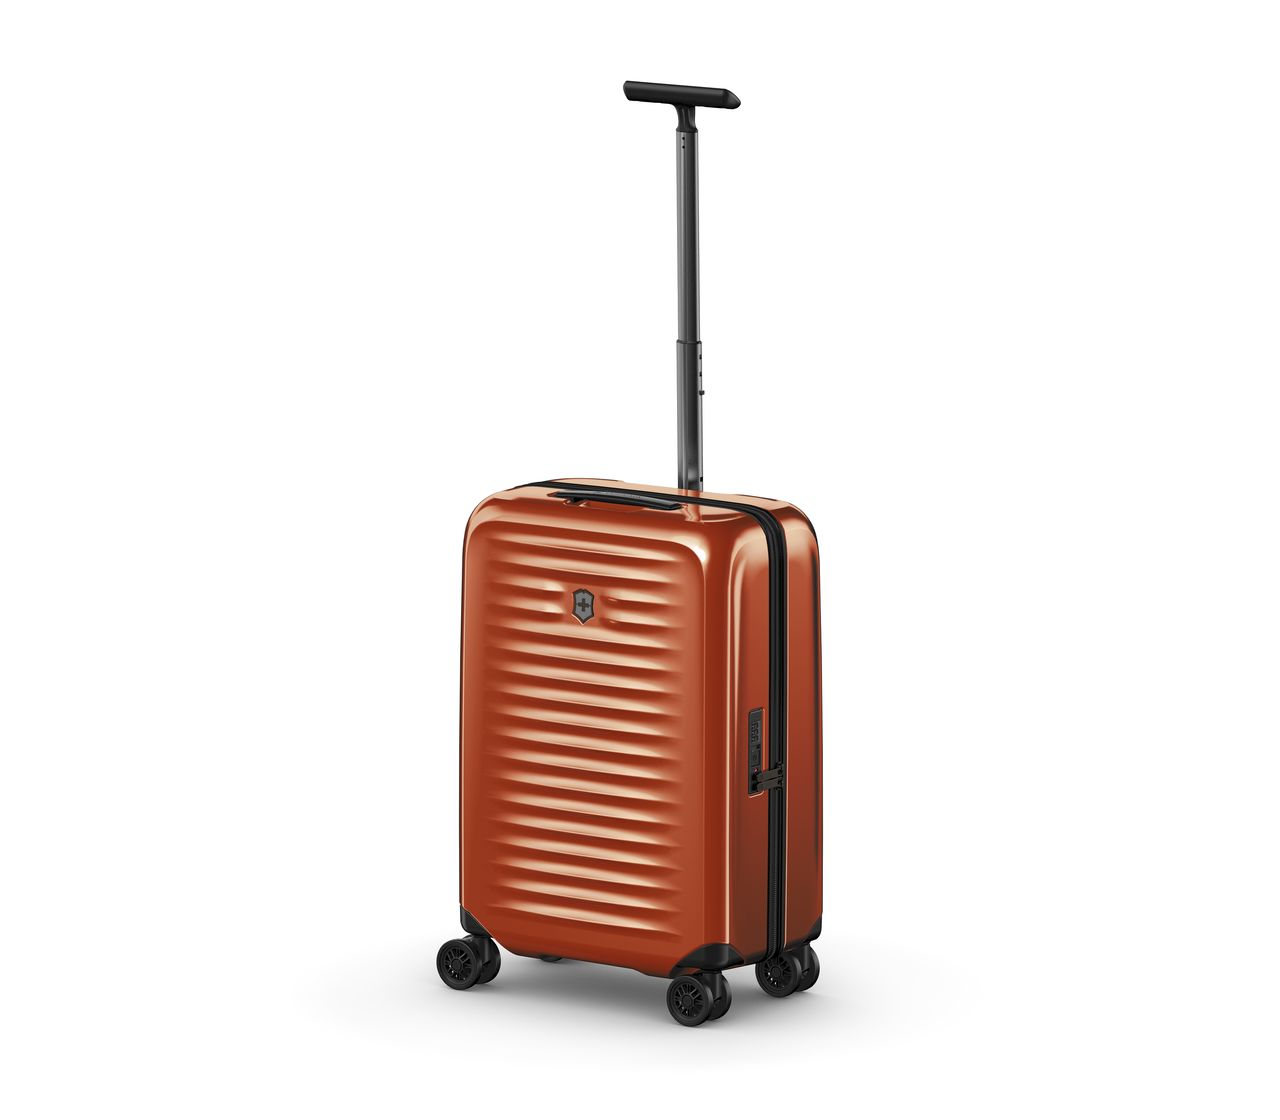 Airox Frequent Flyer Plus Hardside Carry-On-610917